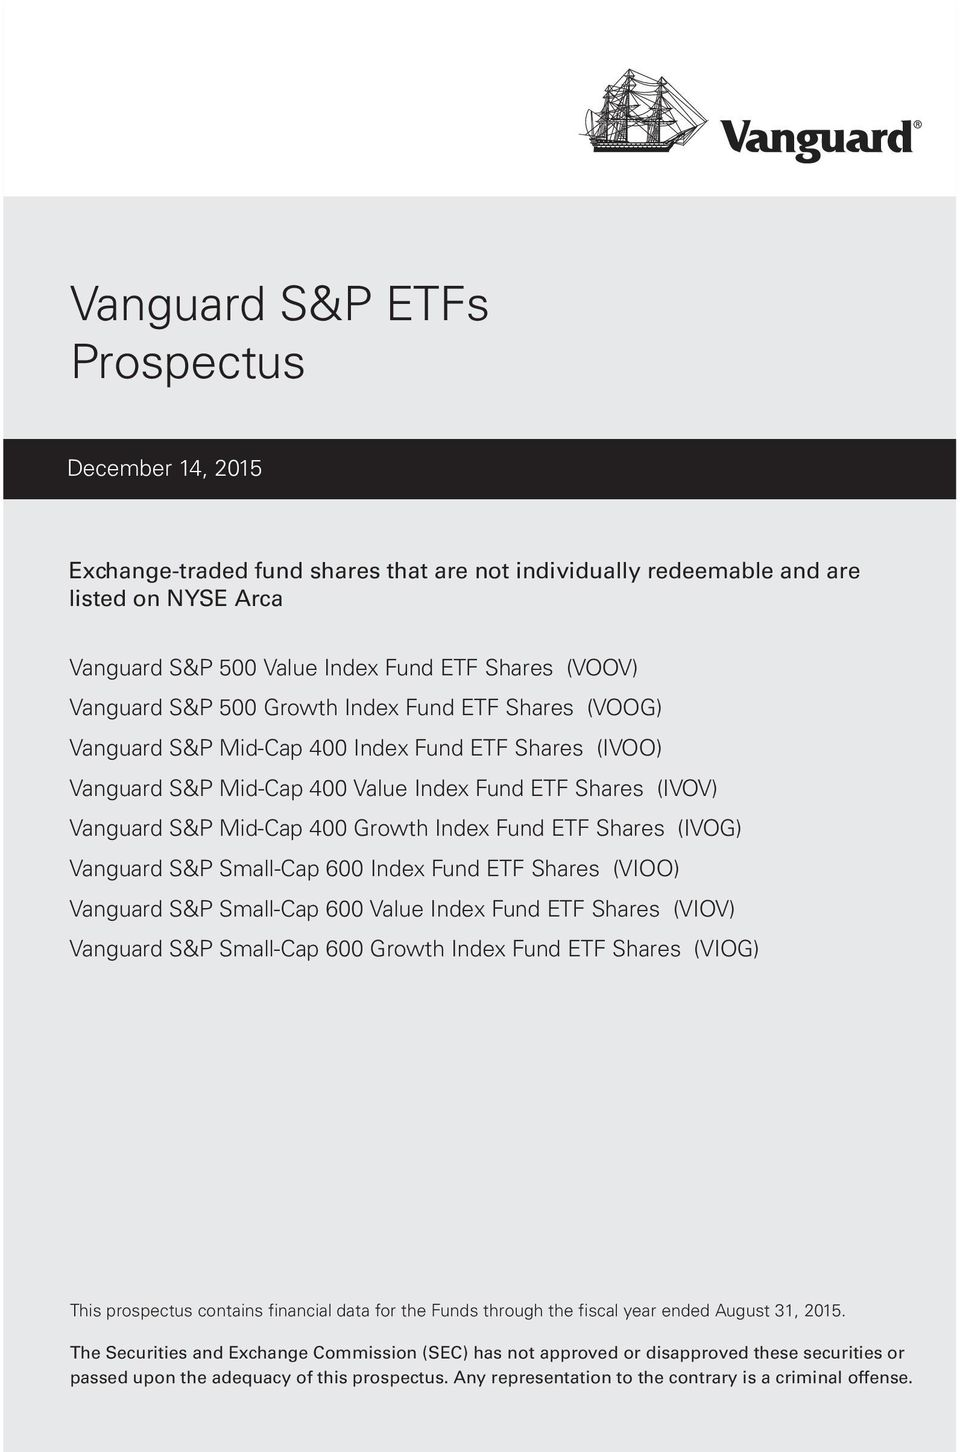 Index Fund ETF Shares (IVOG) Vanguard S&P Small-Cap 600 Index Fund ETF Shares (VIOO) Vanguard S&P Small-Cap 600 Value Index Fund ETF Shares (VIOV) Vanguard S&P Small-Cap 600 Growth Index Fund ETF